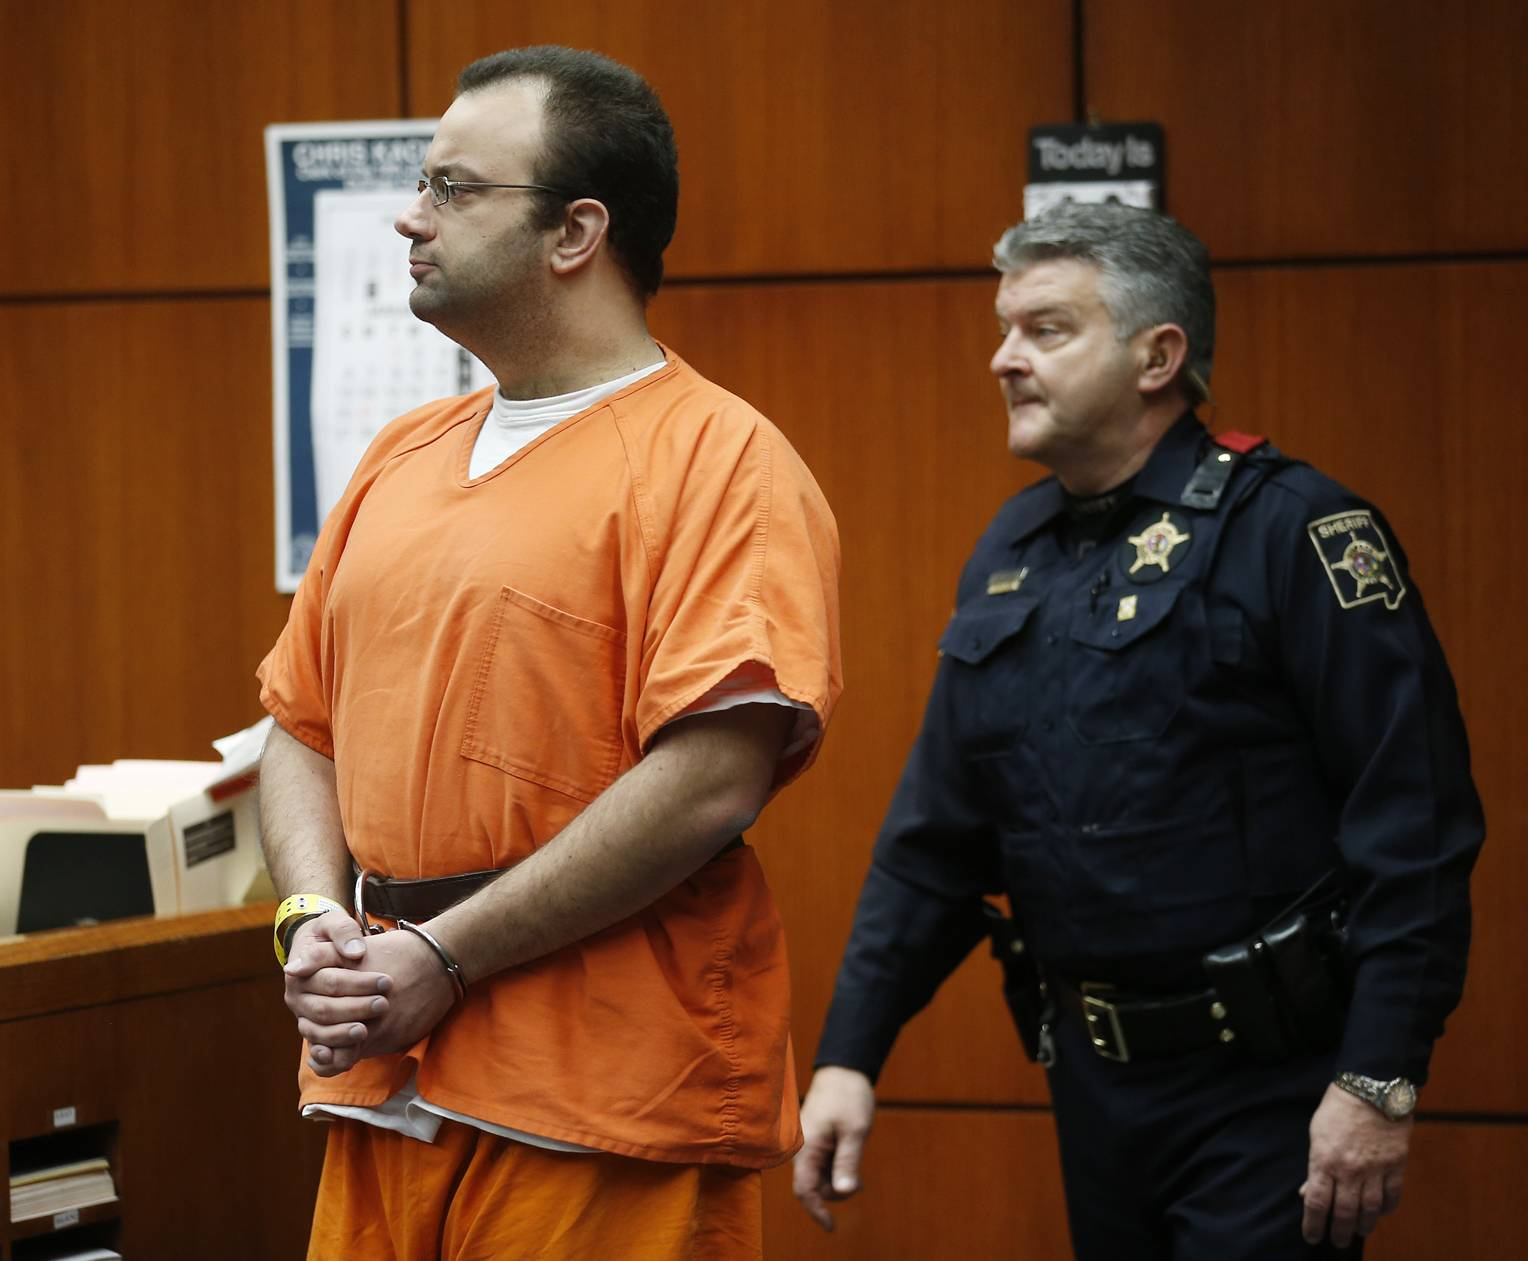 A six-person jury will decide Friday whether Joseph Spitalli, 36, of Darien, is guilty in the Nov. 16, 2012, murder of Teymur Huseynli, a 31-year-old Skokie resident who was dating Spitalli´s former girlfriend.